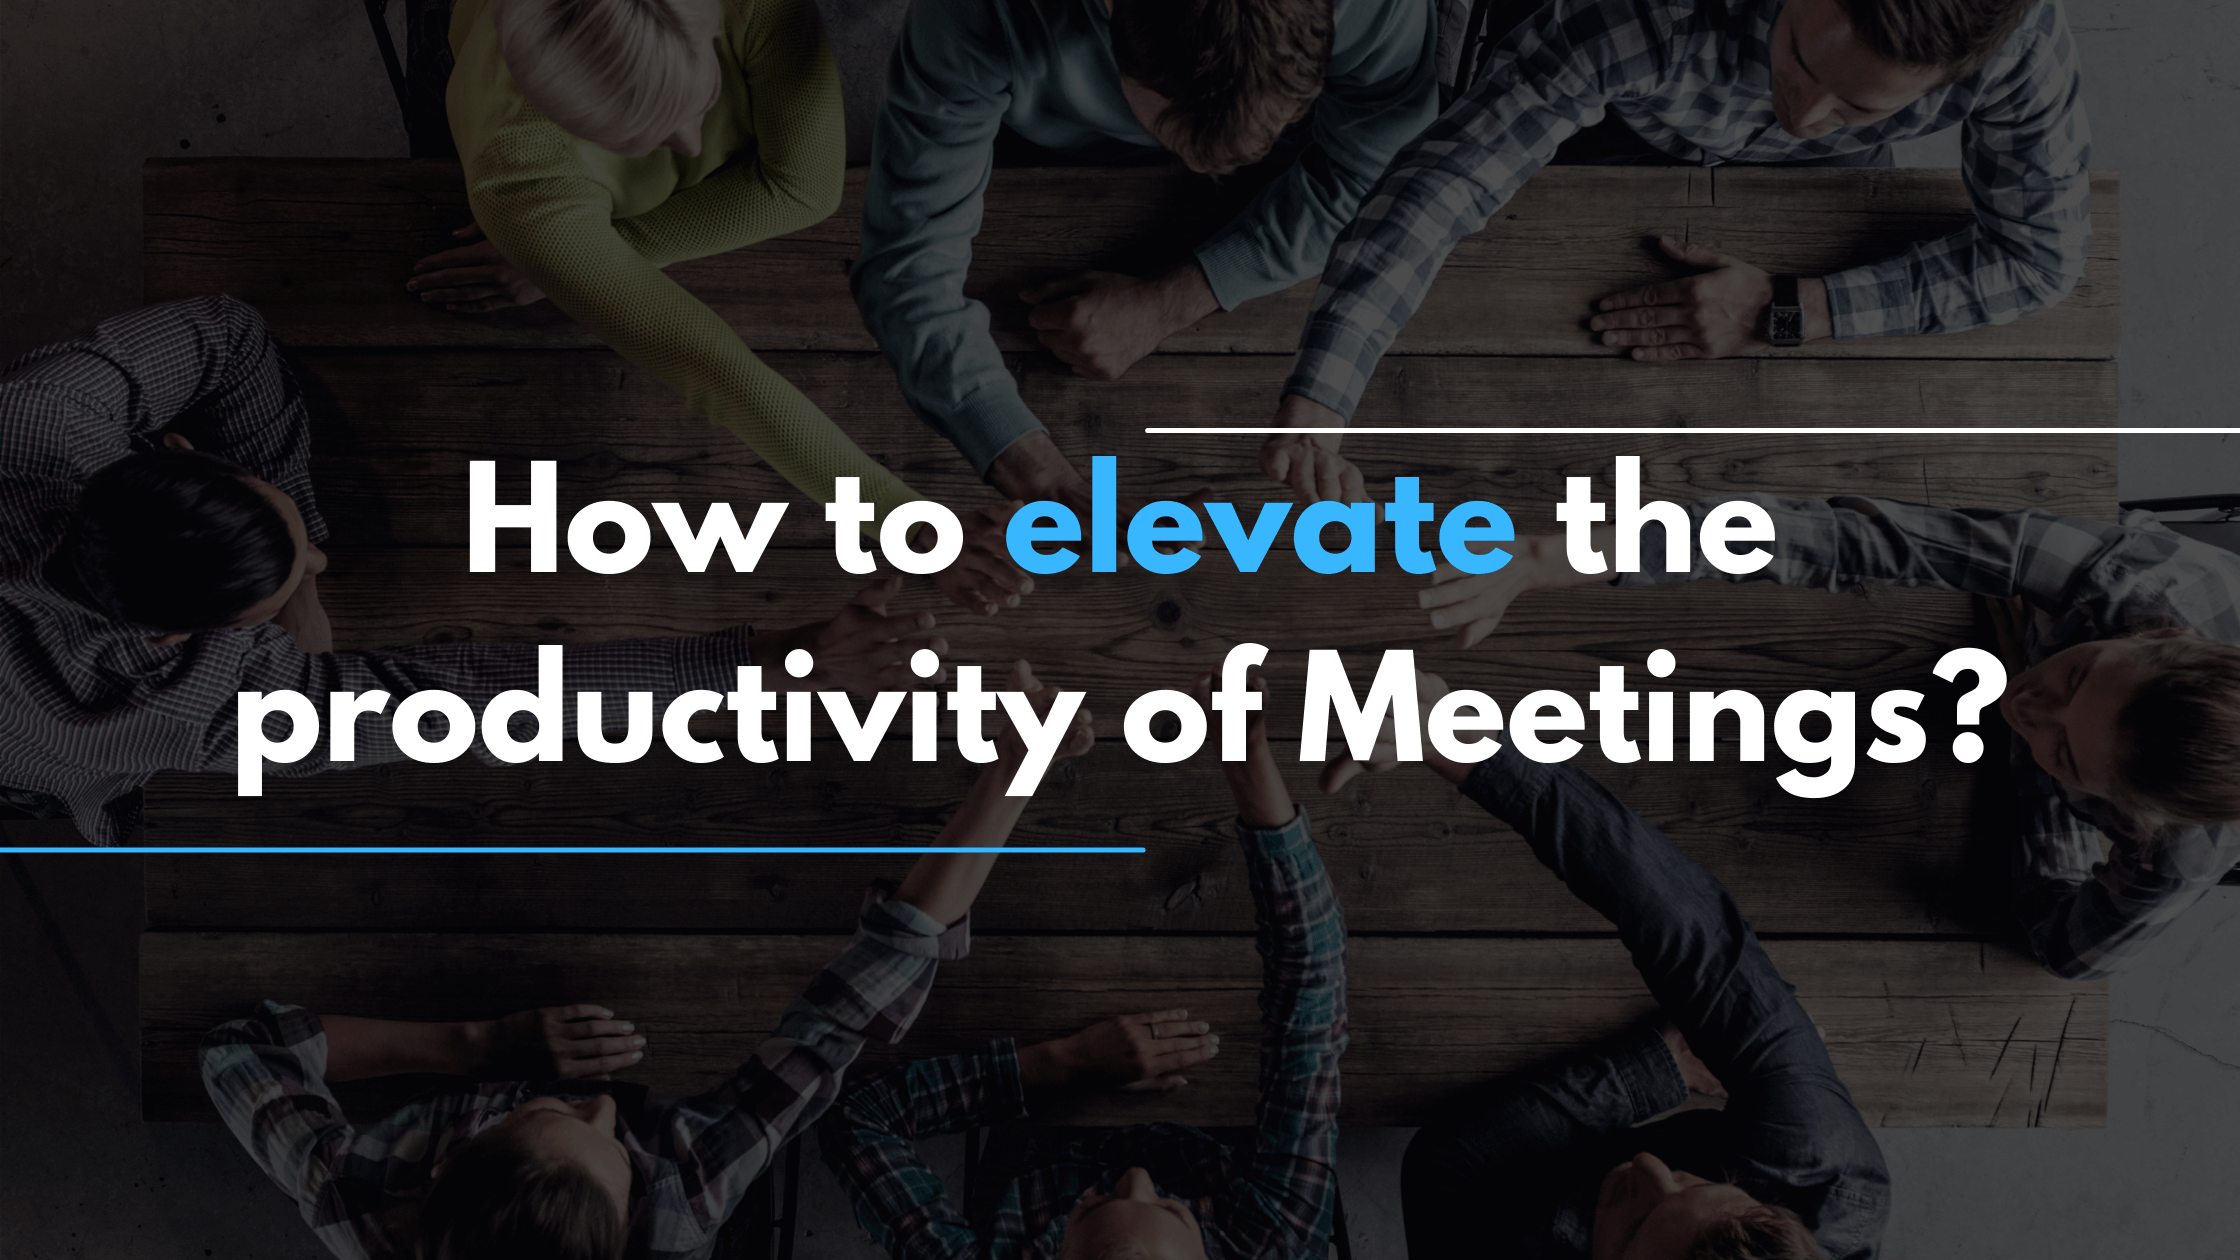 How to elevate the productivity of Meetings